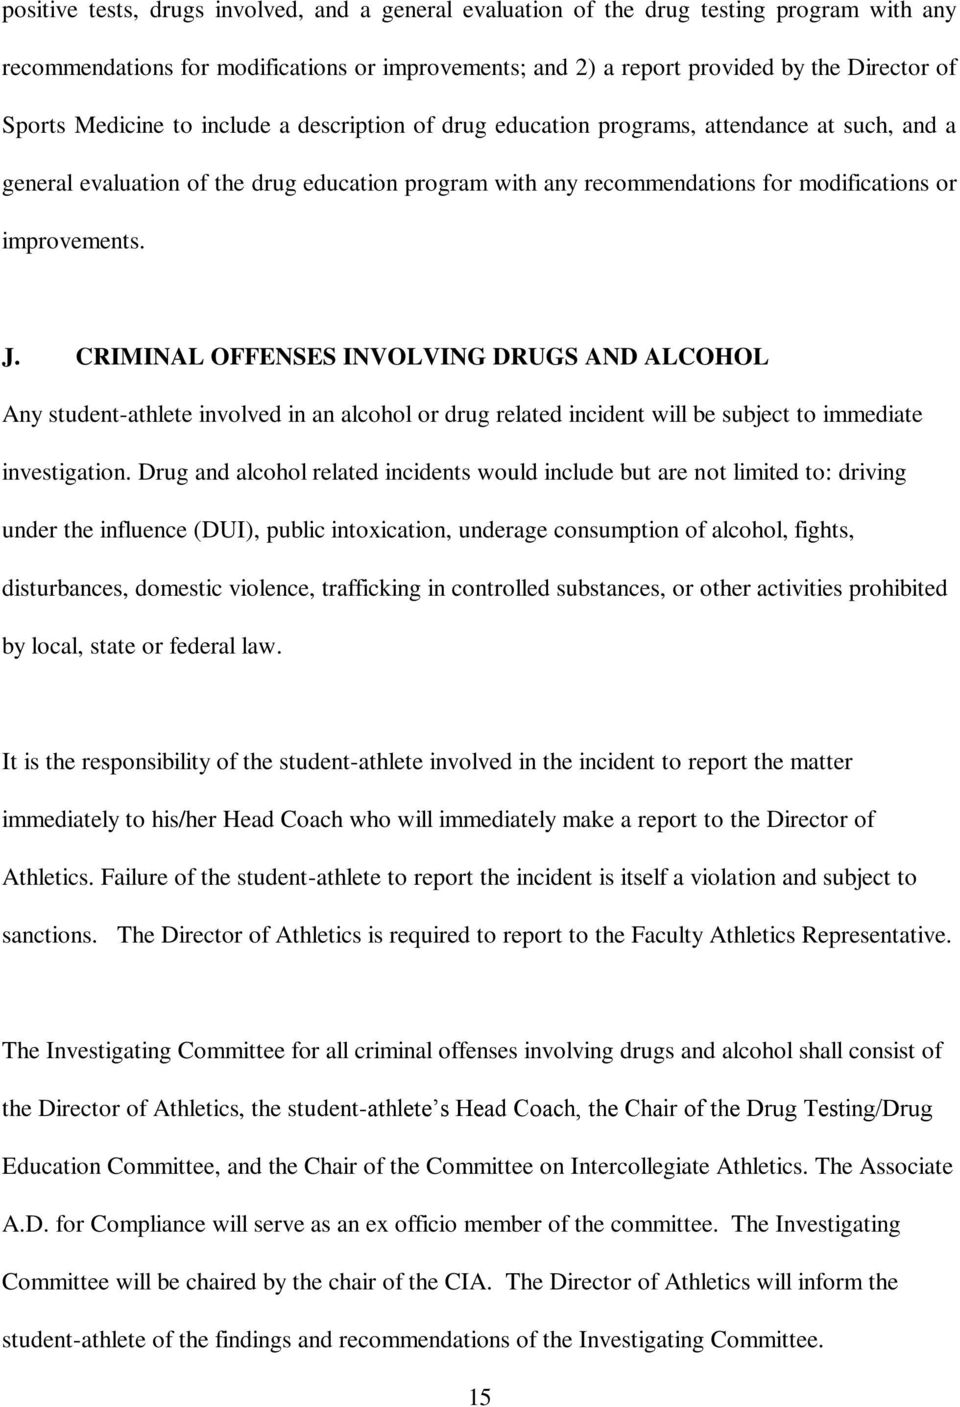 CRIMINAL OFFENSES INVOLVING DRUGS AND ALCOHOL Any student-athlete involved in an alcohol or drug related incident will be subject to immediate investigation.